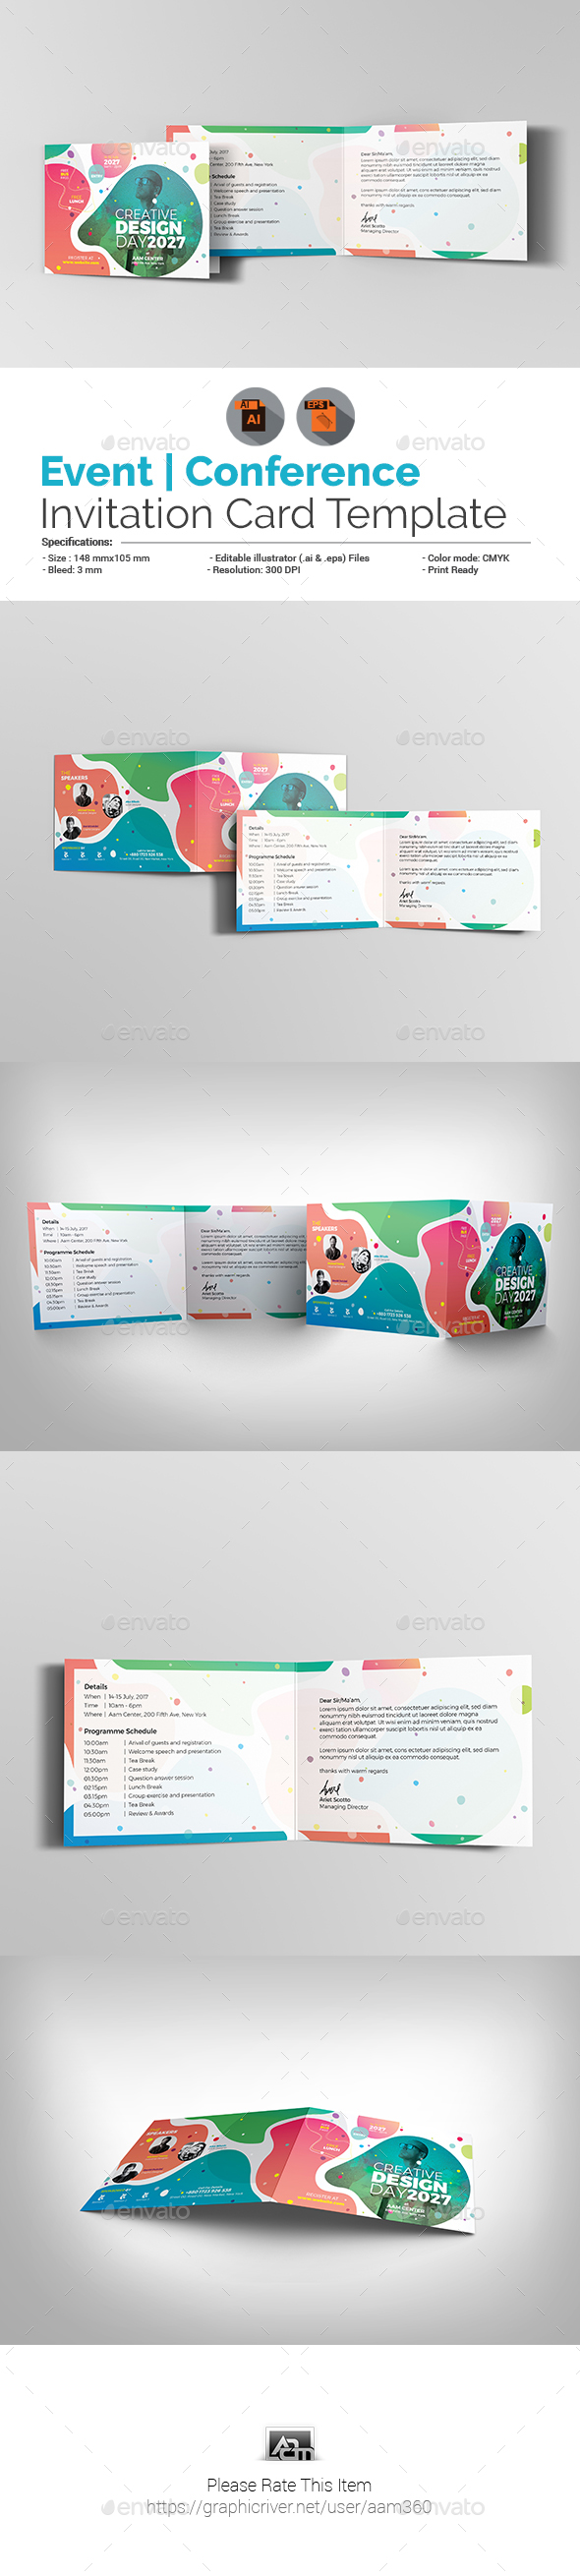 Event/Conference Invitation Card Template - Cards & Invites Print Templates